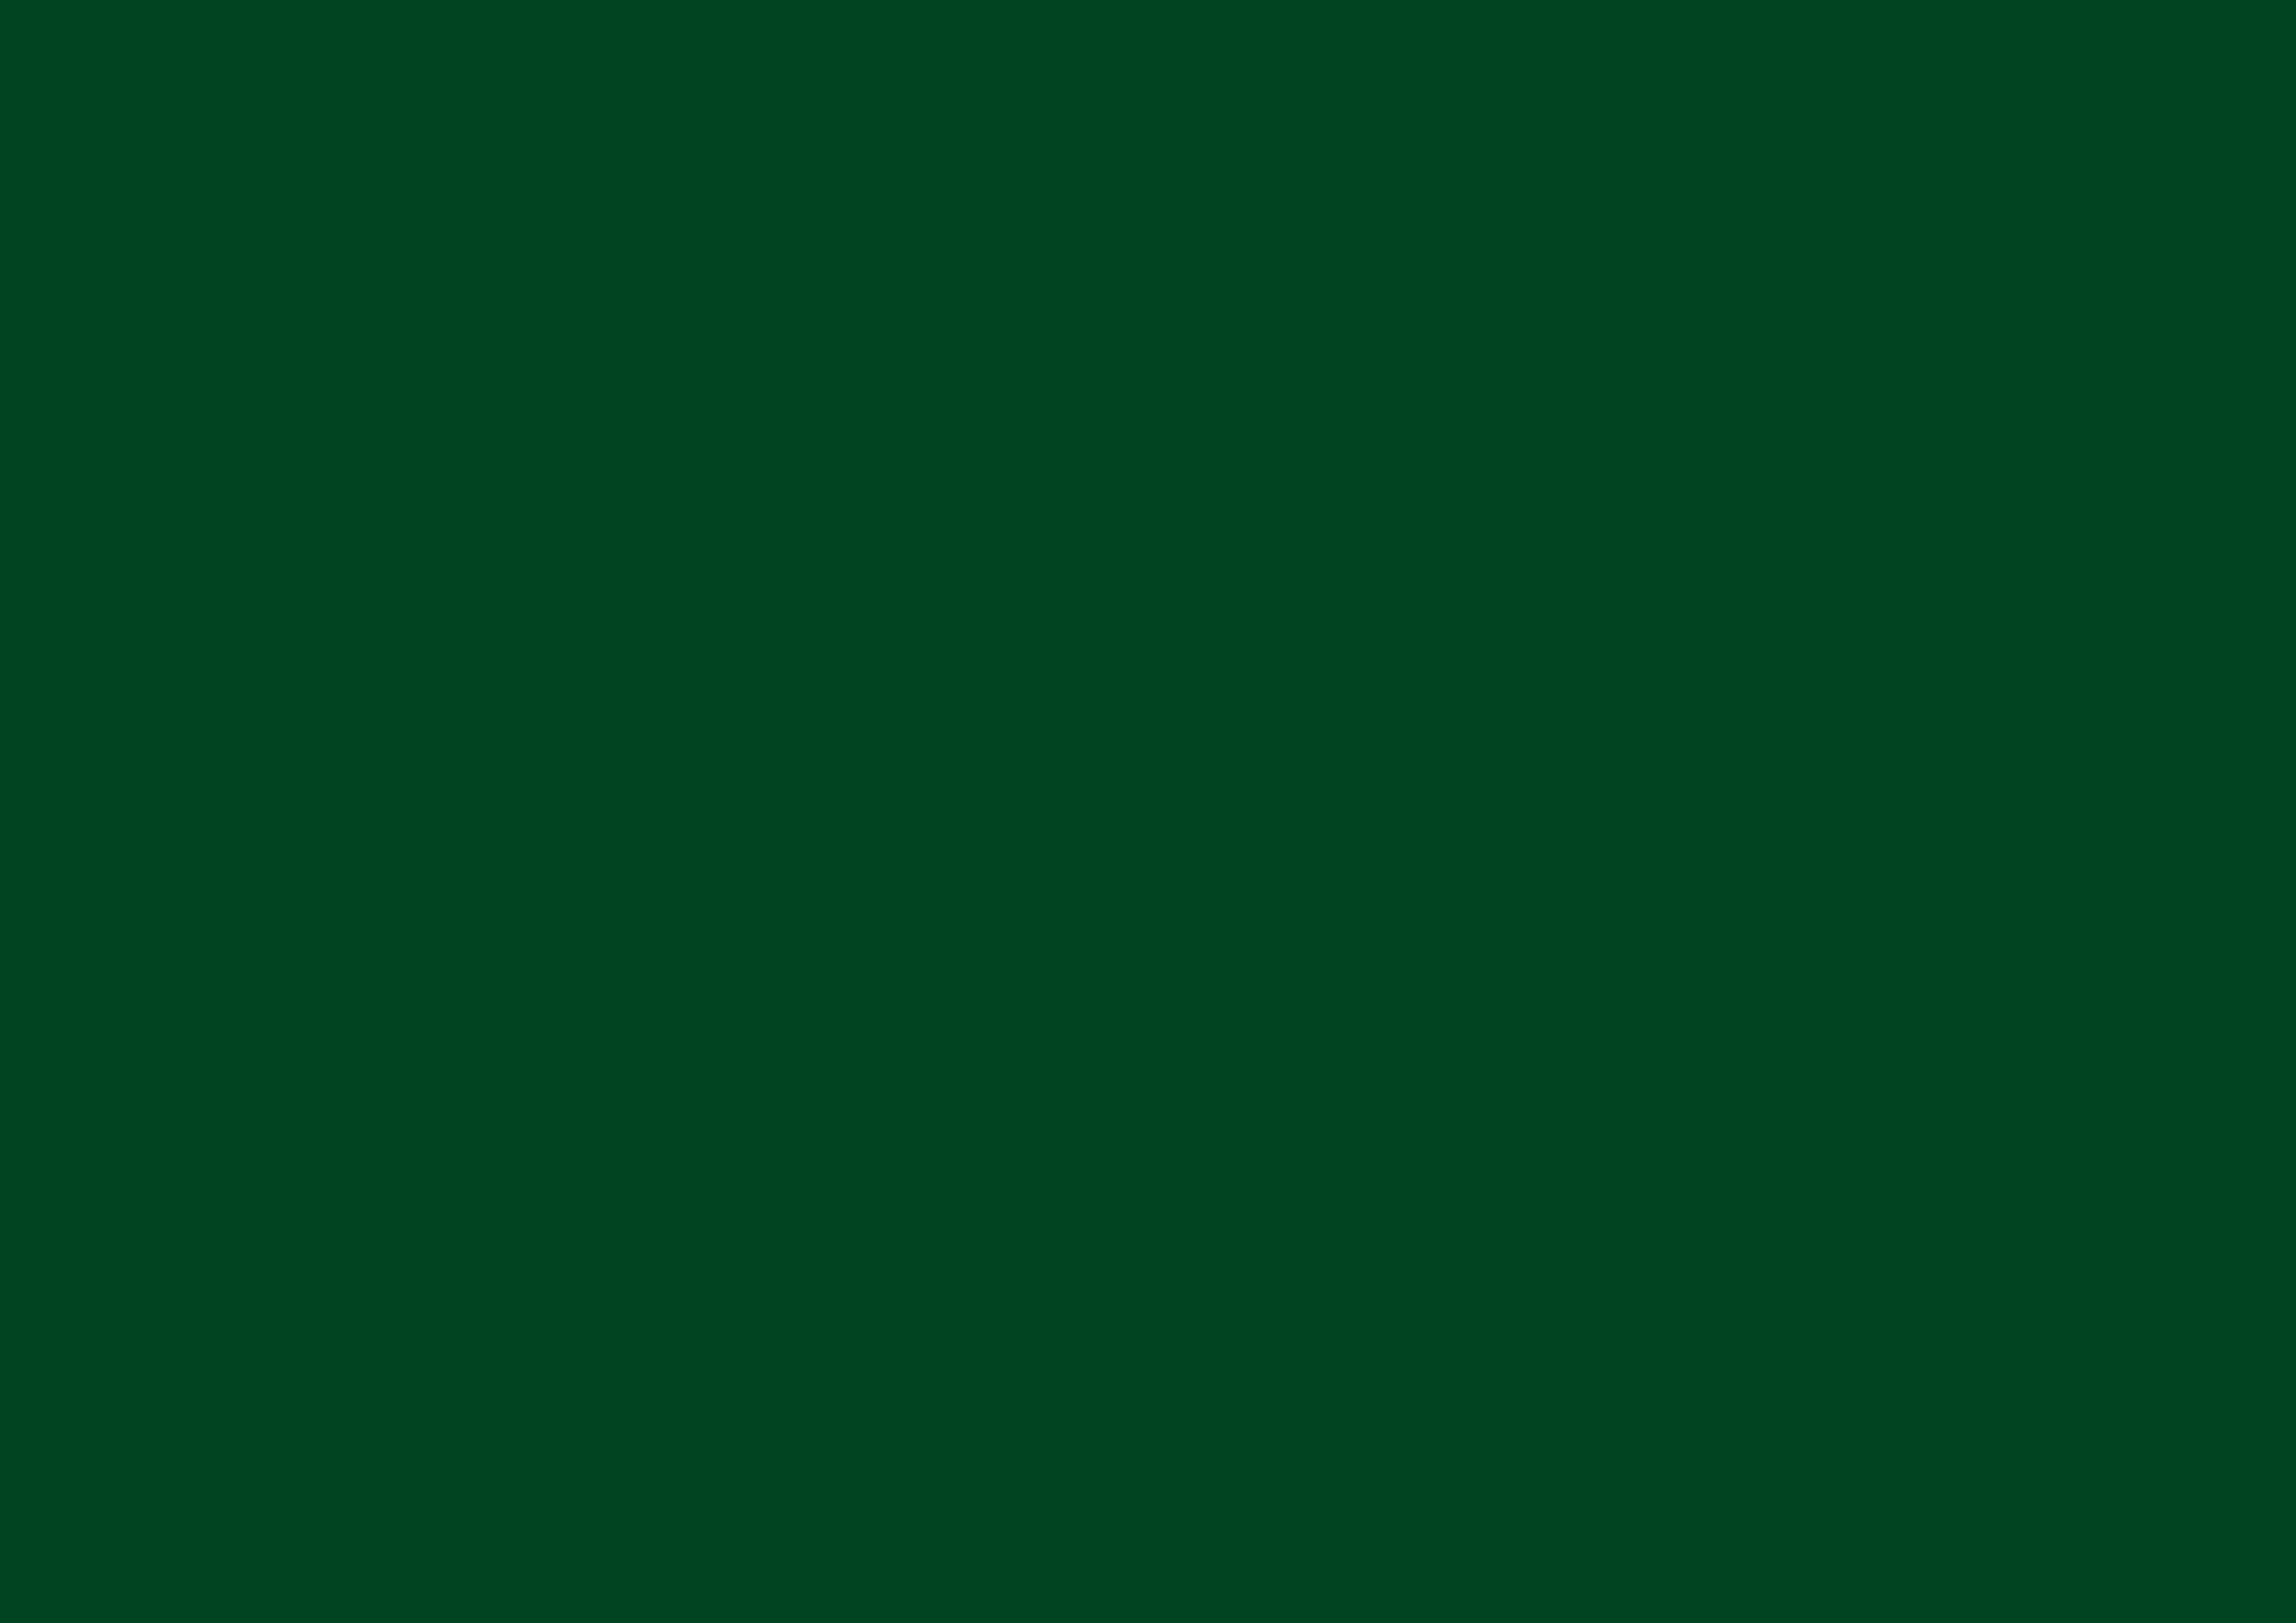 3508x2480 UP Forest Green Solid Color Background